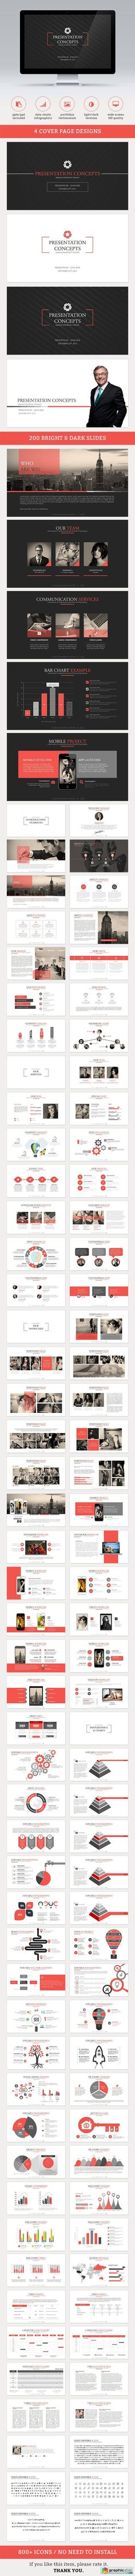 Axis Powerpoint Template